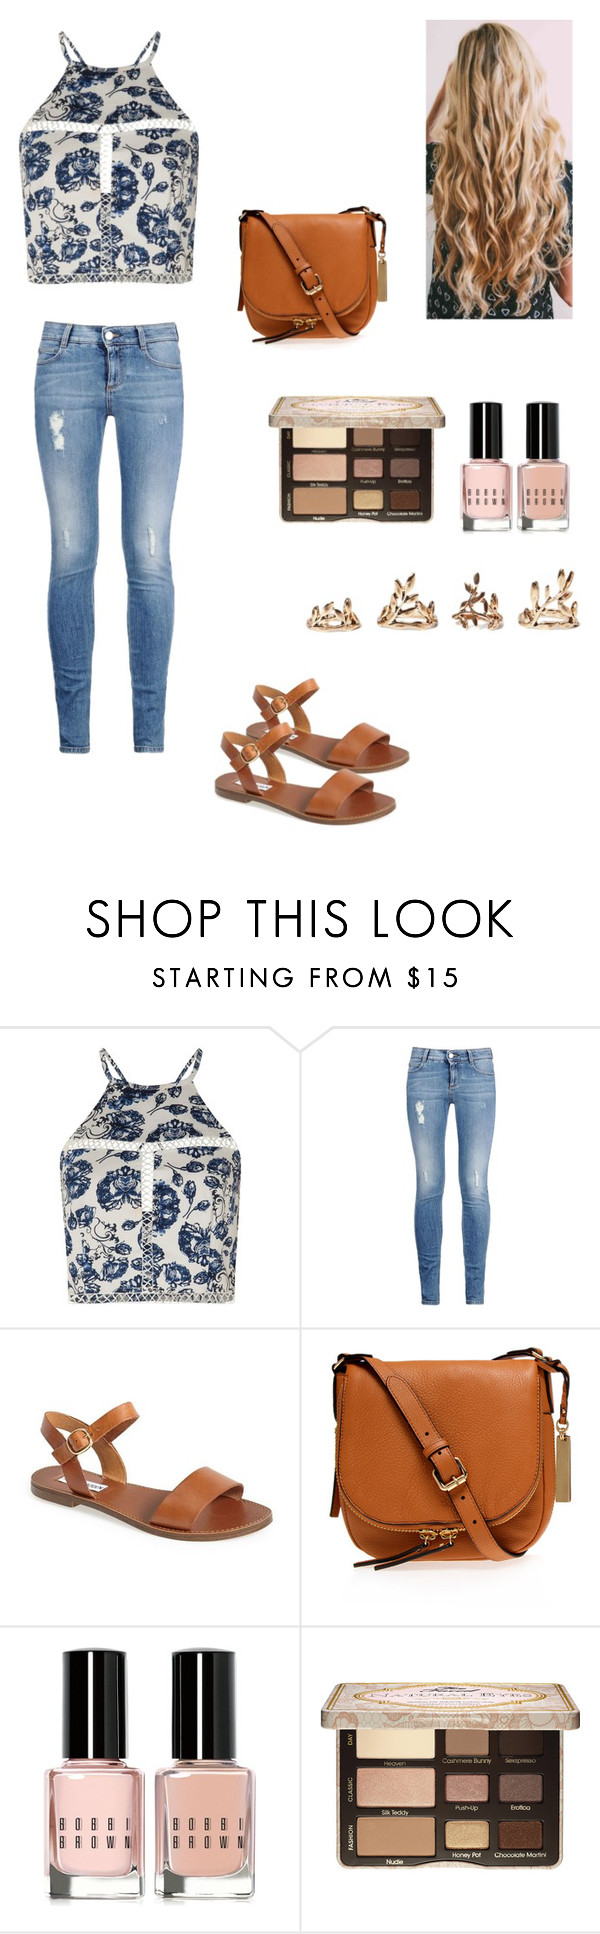 """Untitled #63"" by yabanuelos ❤ liked on Polyvore featuring Missguided, STELLA McCARTNEY, Steve Madden, Vince Camuto, Bobbi Brown Cosmetics, Too Faced Cosmetics and Forever 21"